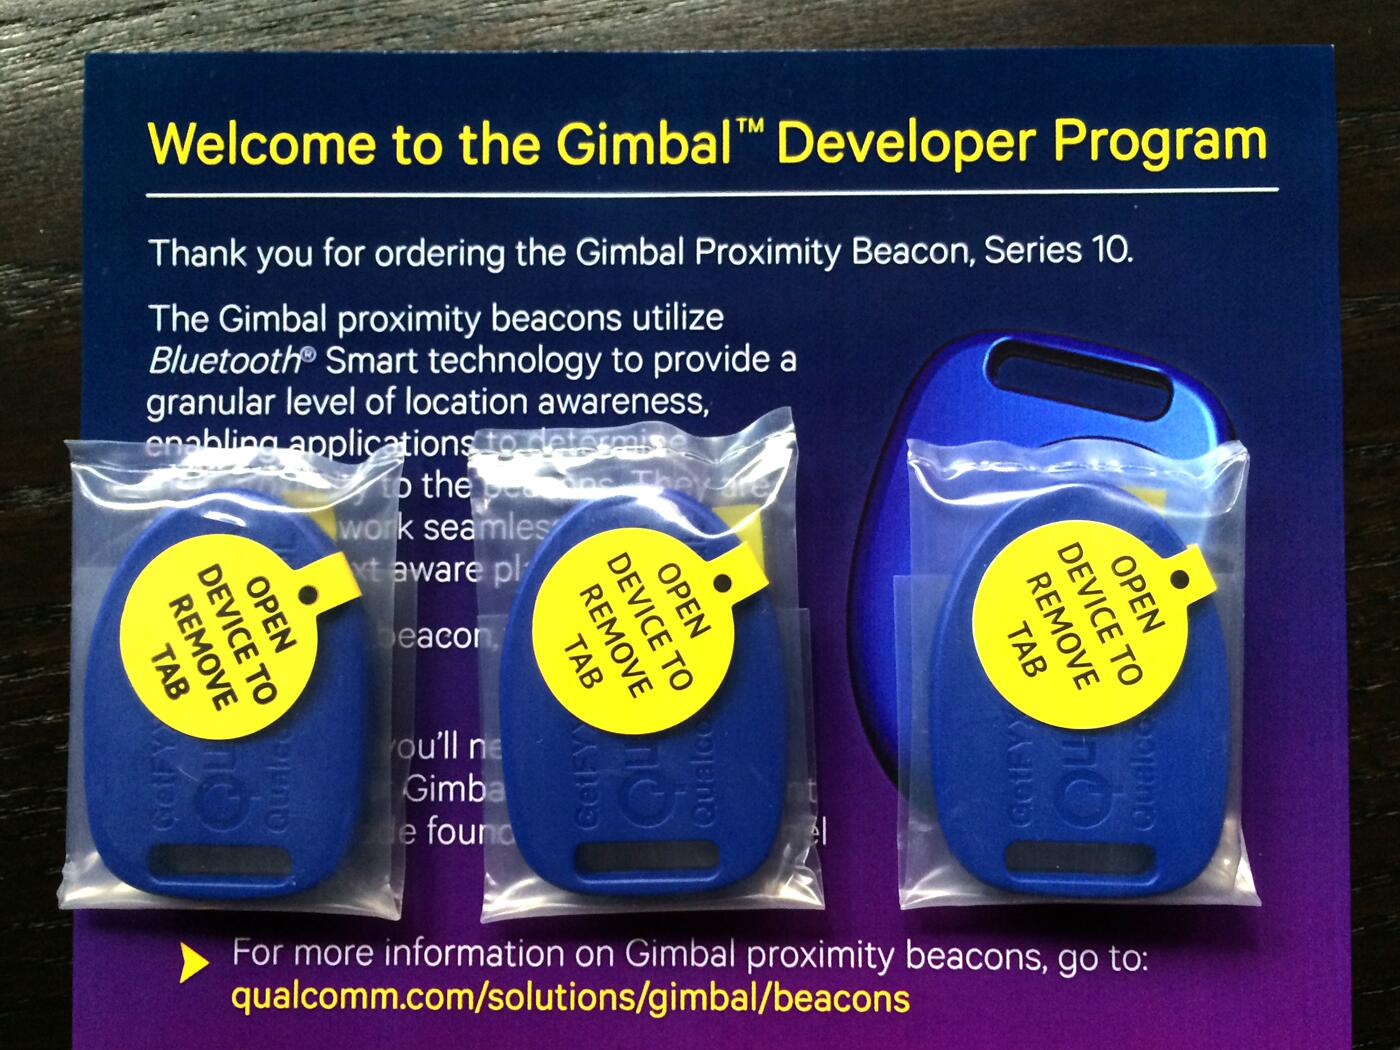 RT @BeaconSandwich: Thank you @Gimbal for the developer #iBeacon set! We look forward to explore the platform better. http://t.co/qckaOqNeOM